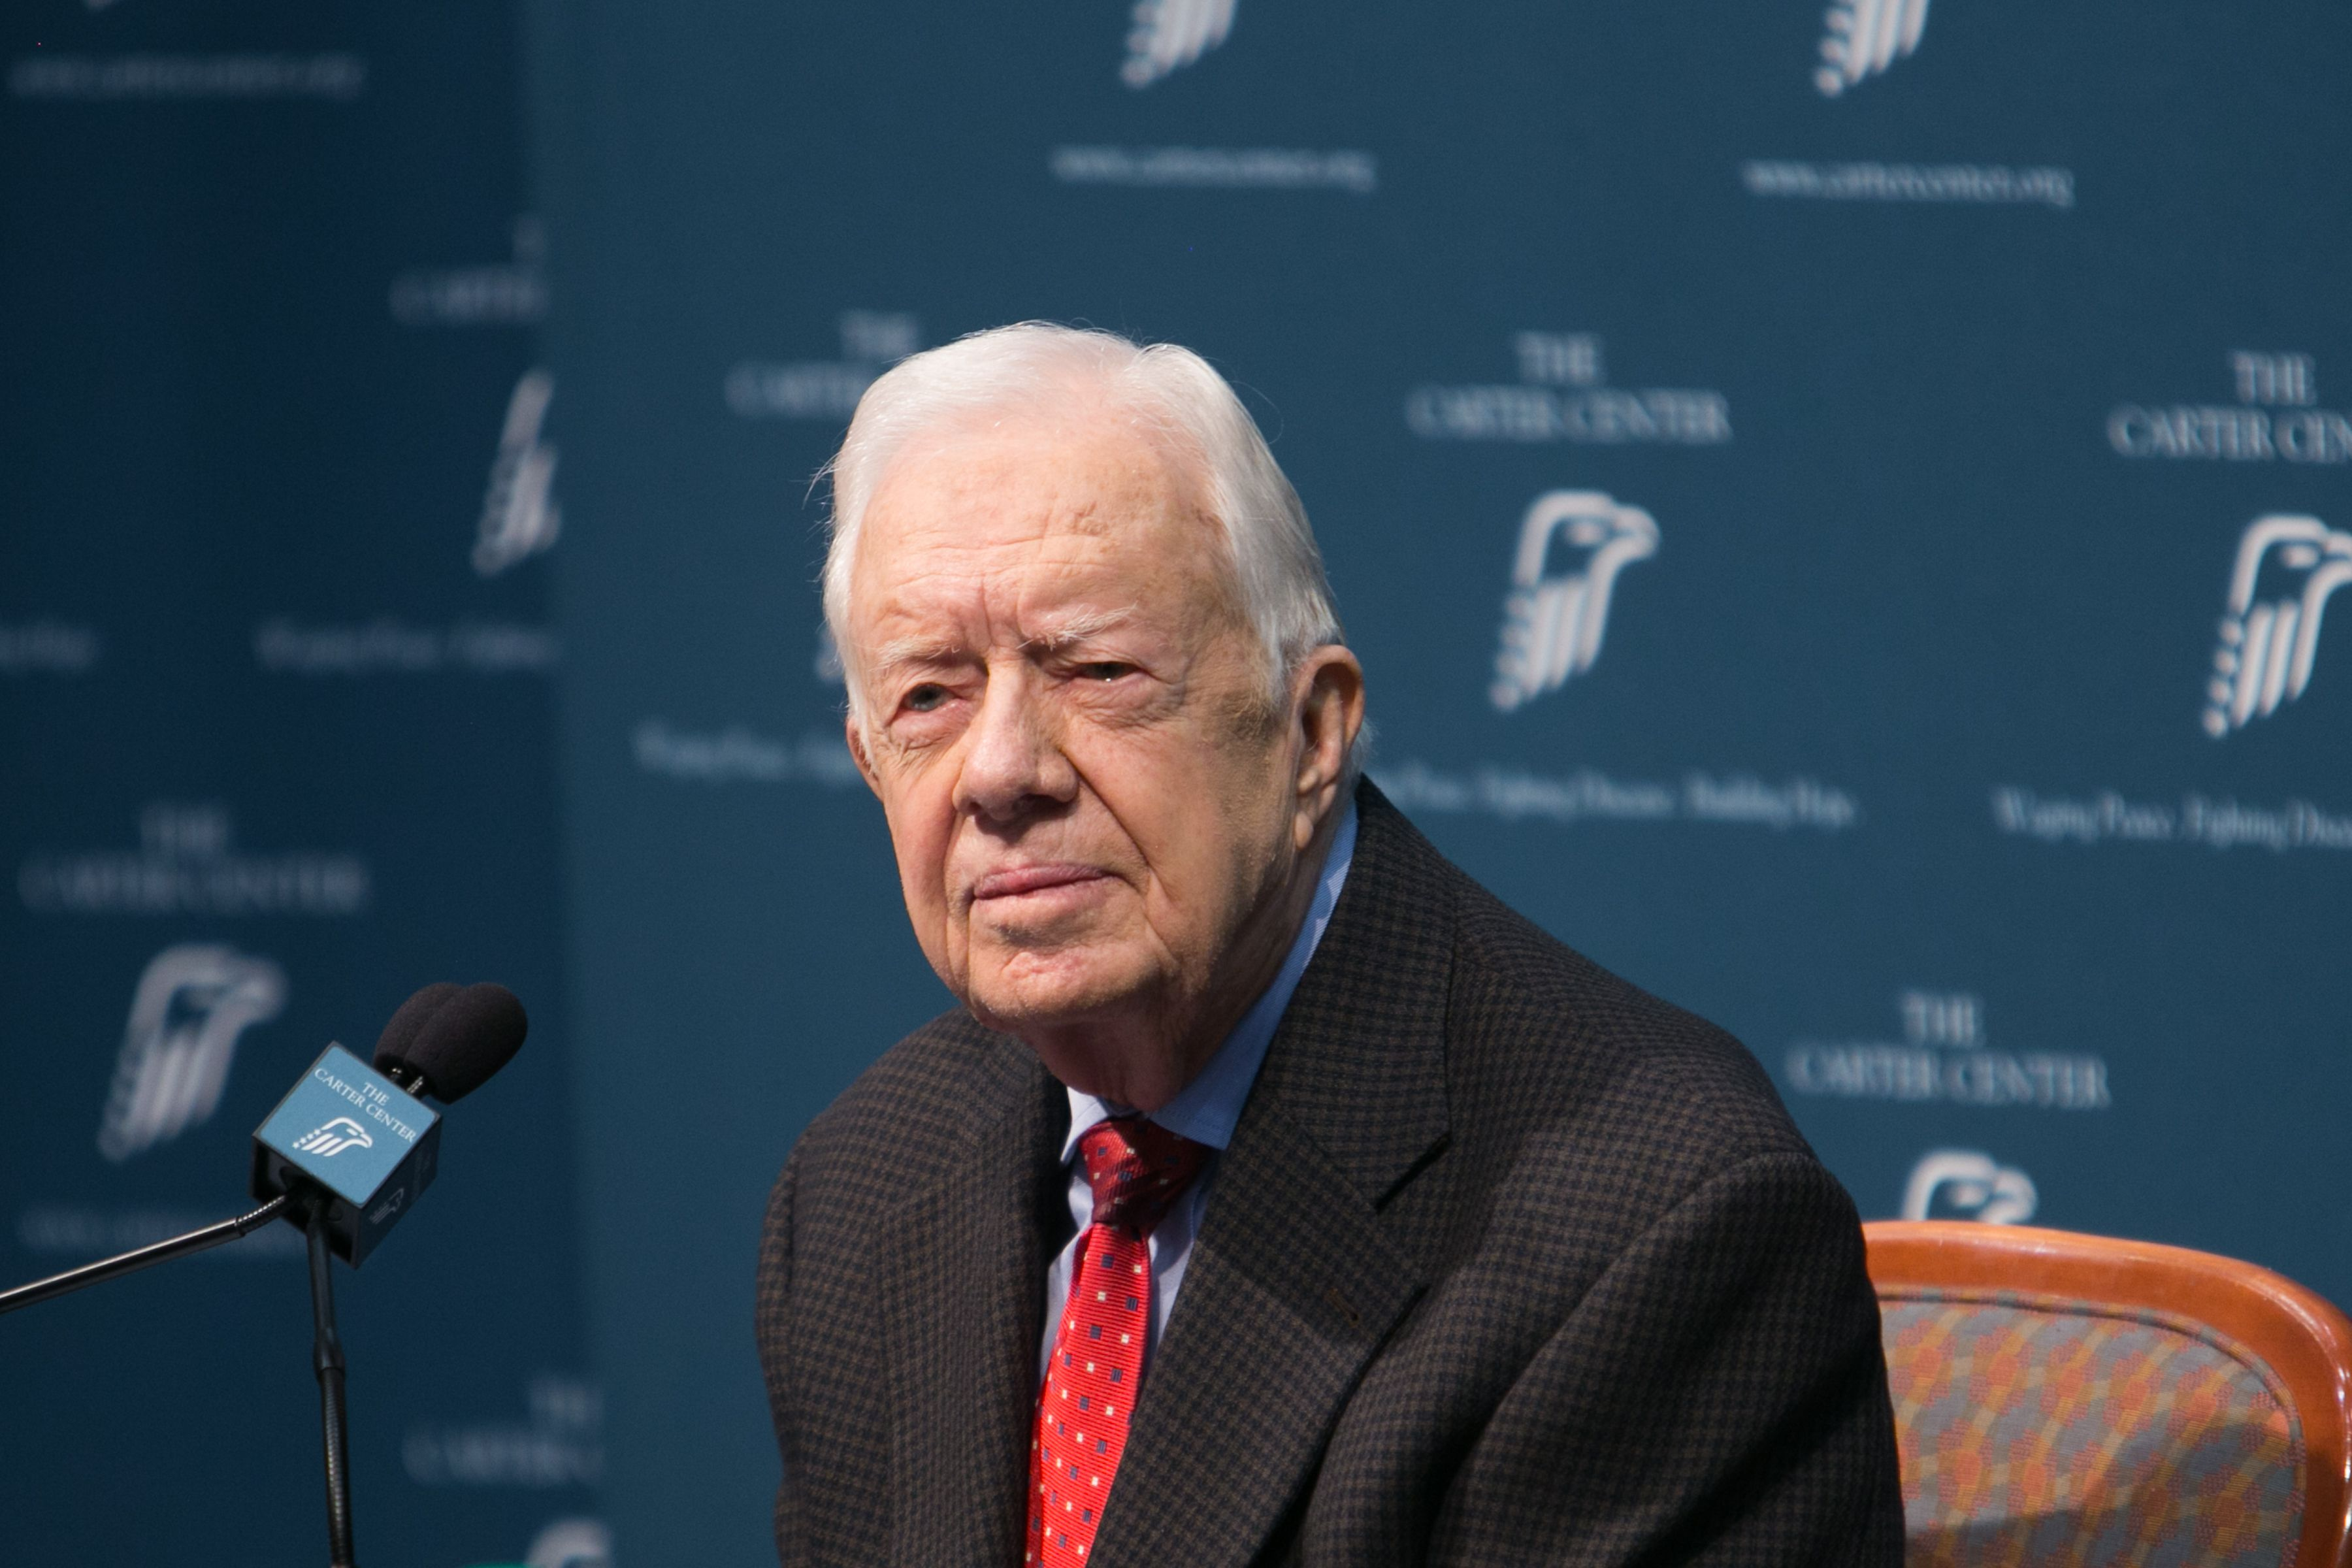 Jimmy Carter Goes There, Calls Trump an Illegitimate President